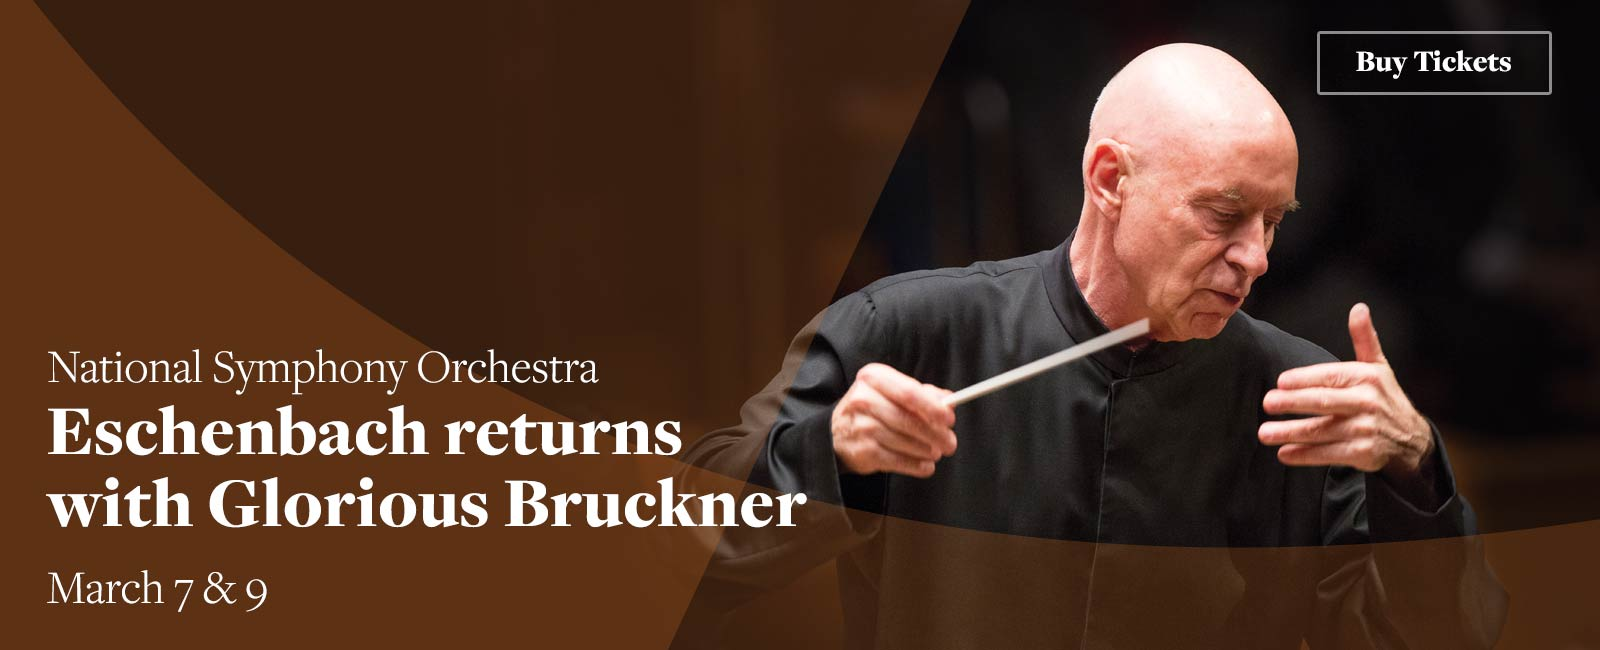 National Symphony Orchestra: Eschenbach returns with Glorious Bruckner